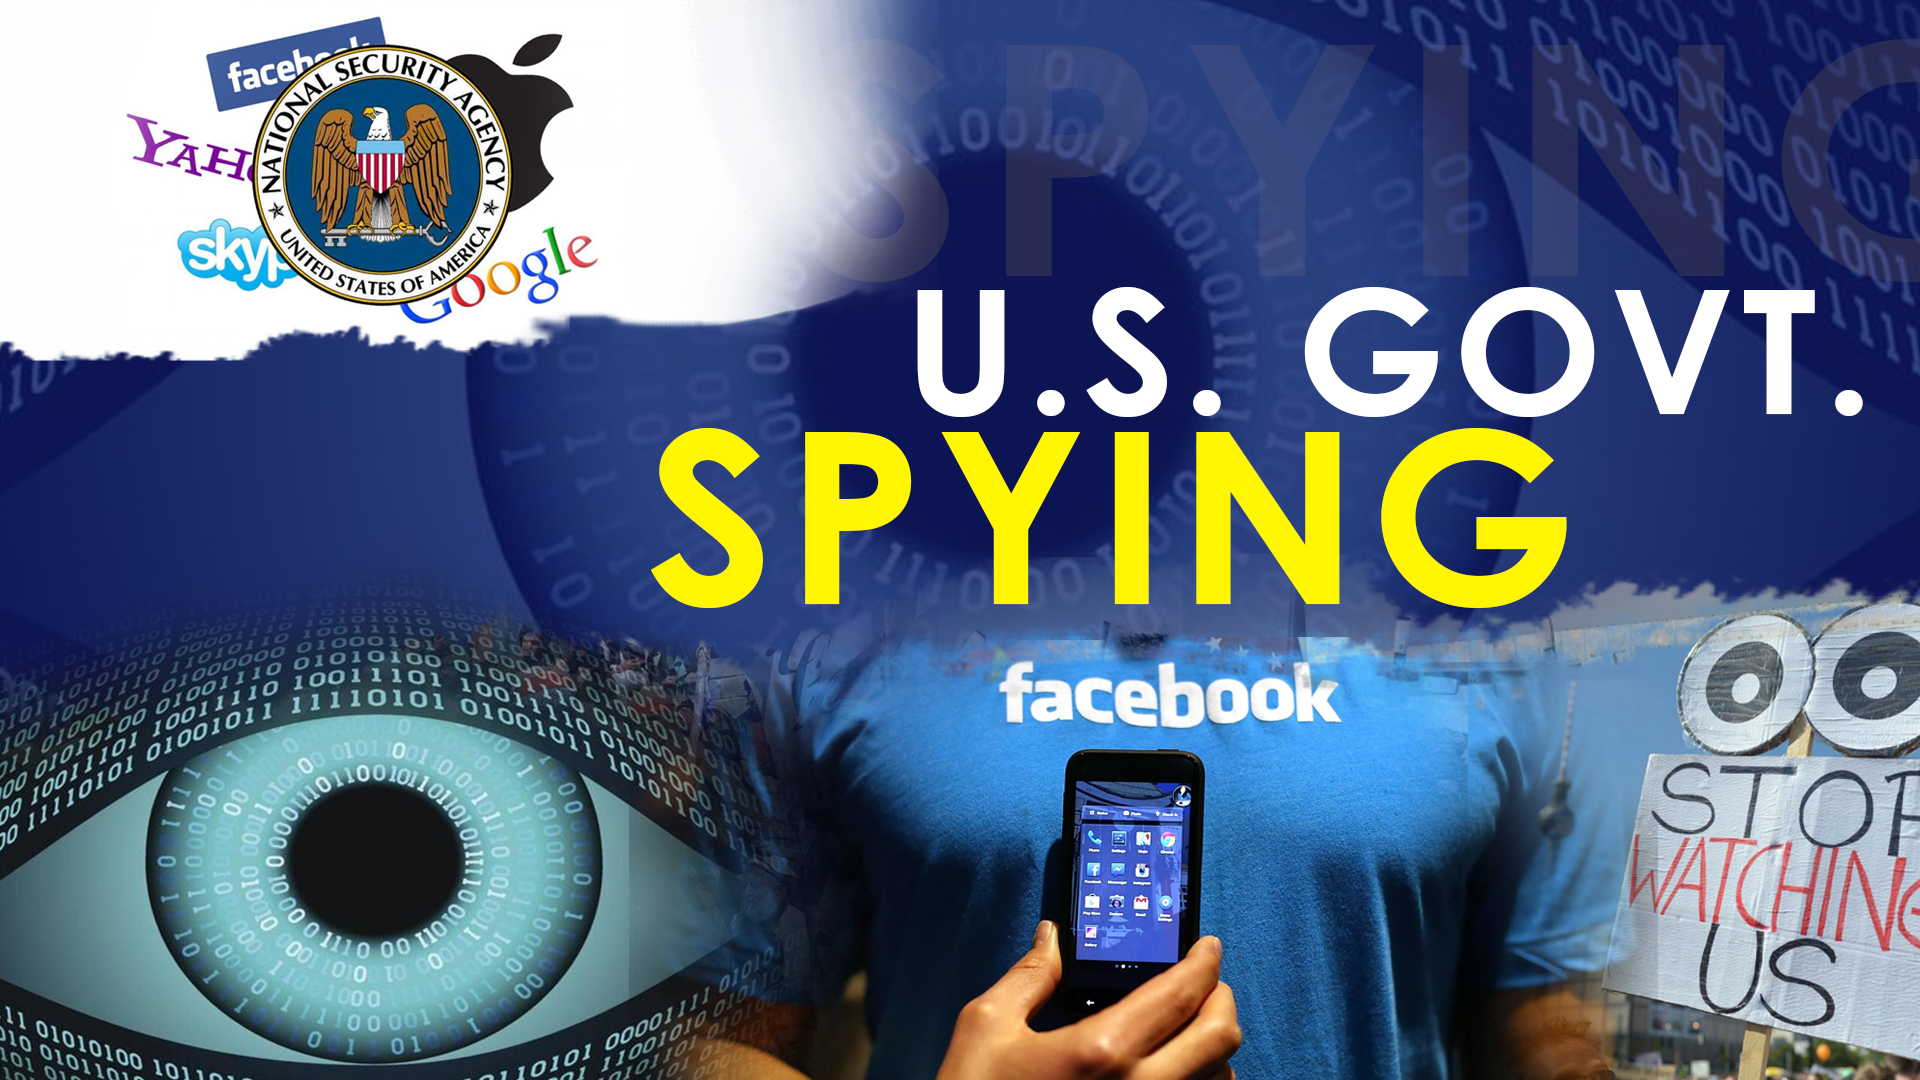 Americans are tired of being spied on